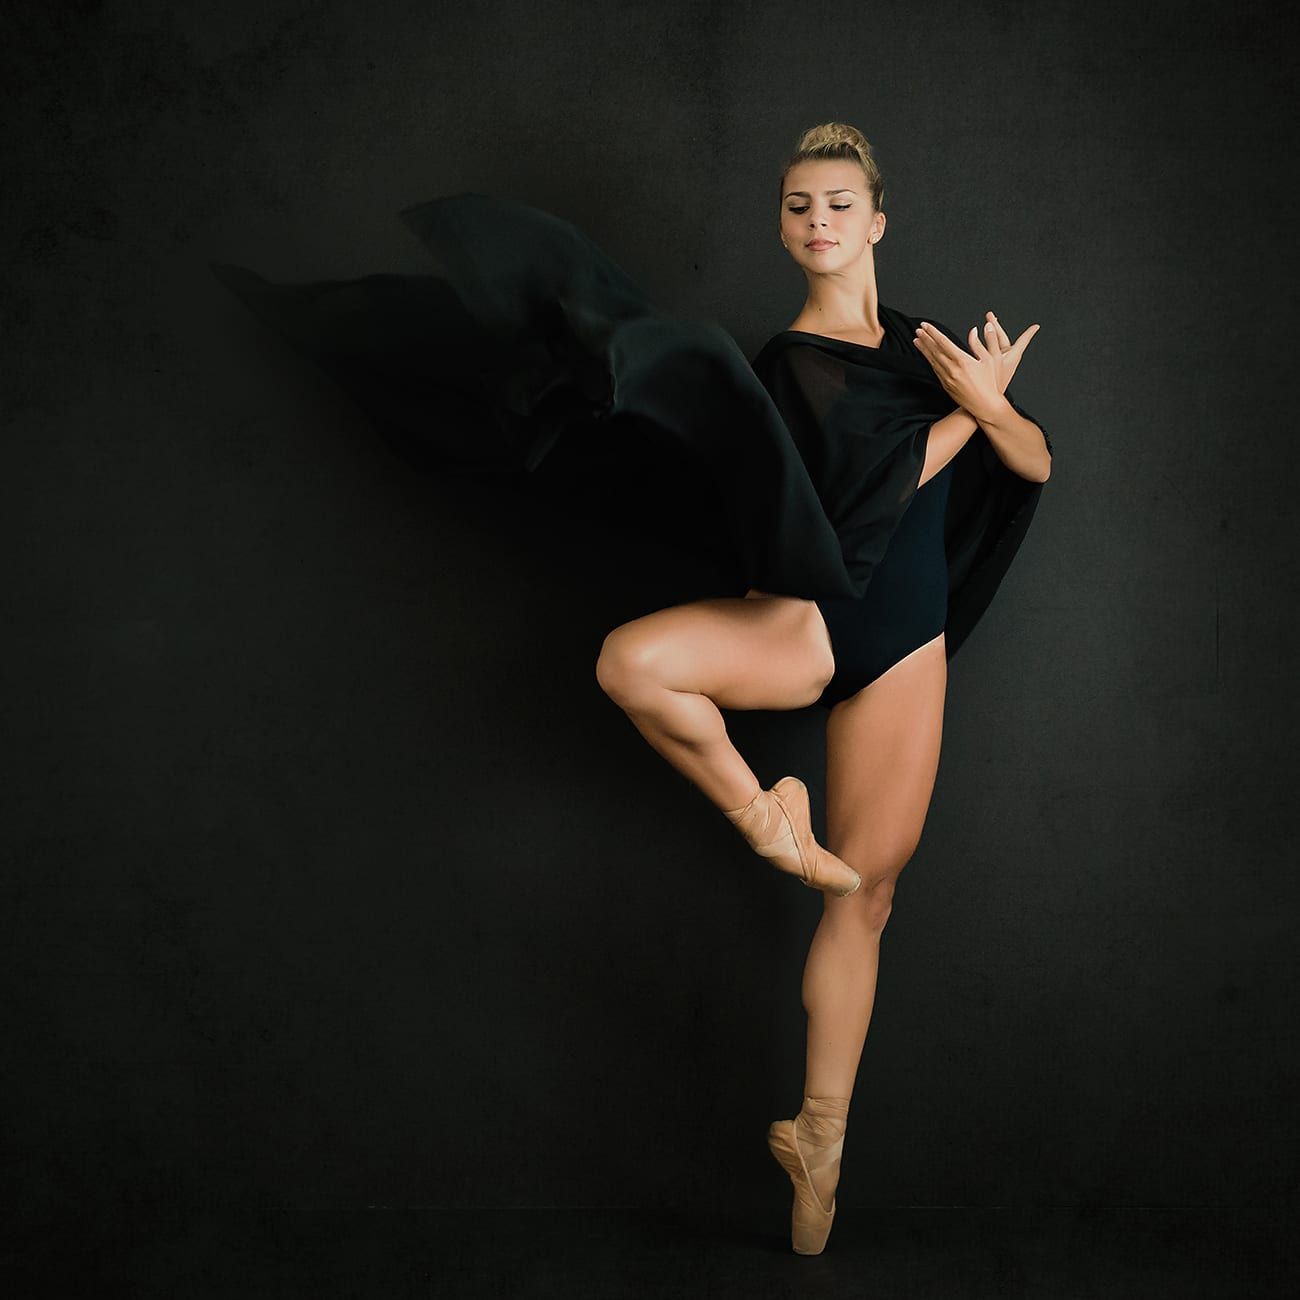 Lakeland Photographer – Dance photographer – Kim Carpenter Portraits5(4)